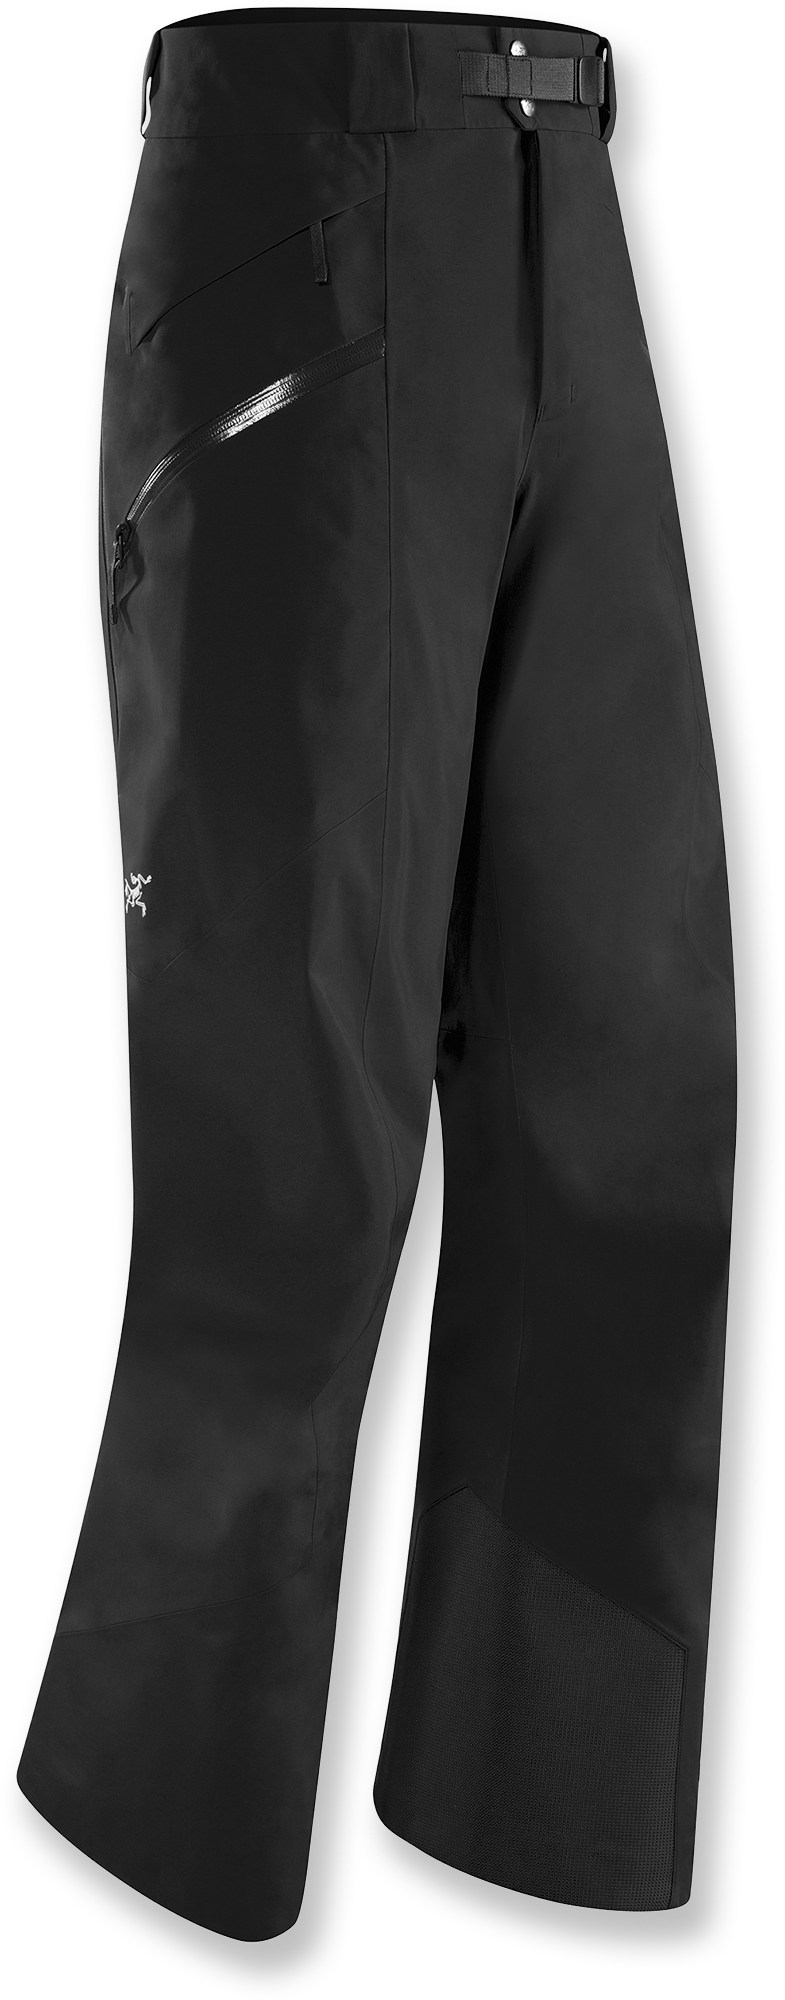 Arc'teryx Sabre Pants - Men's